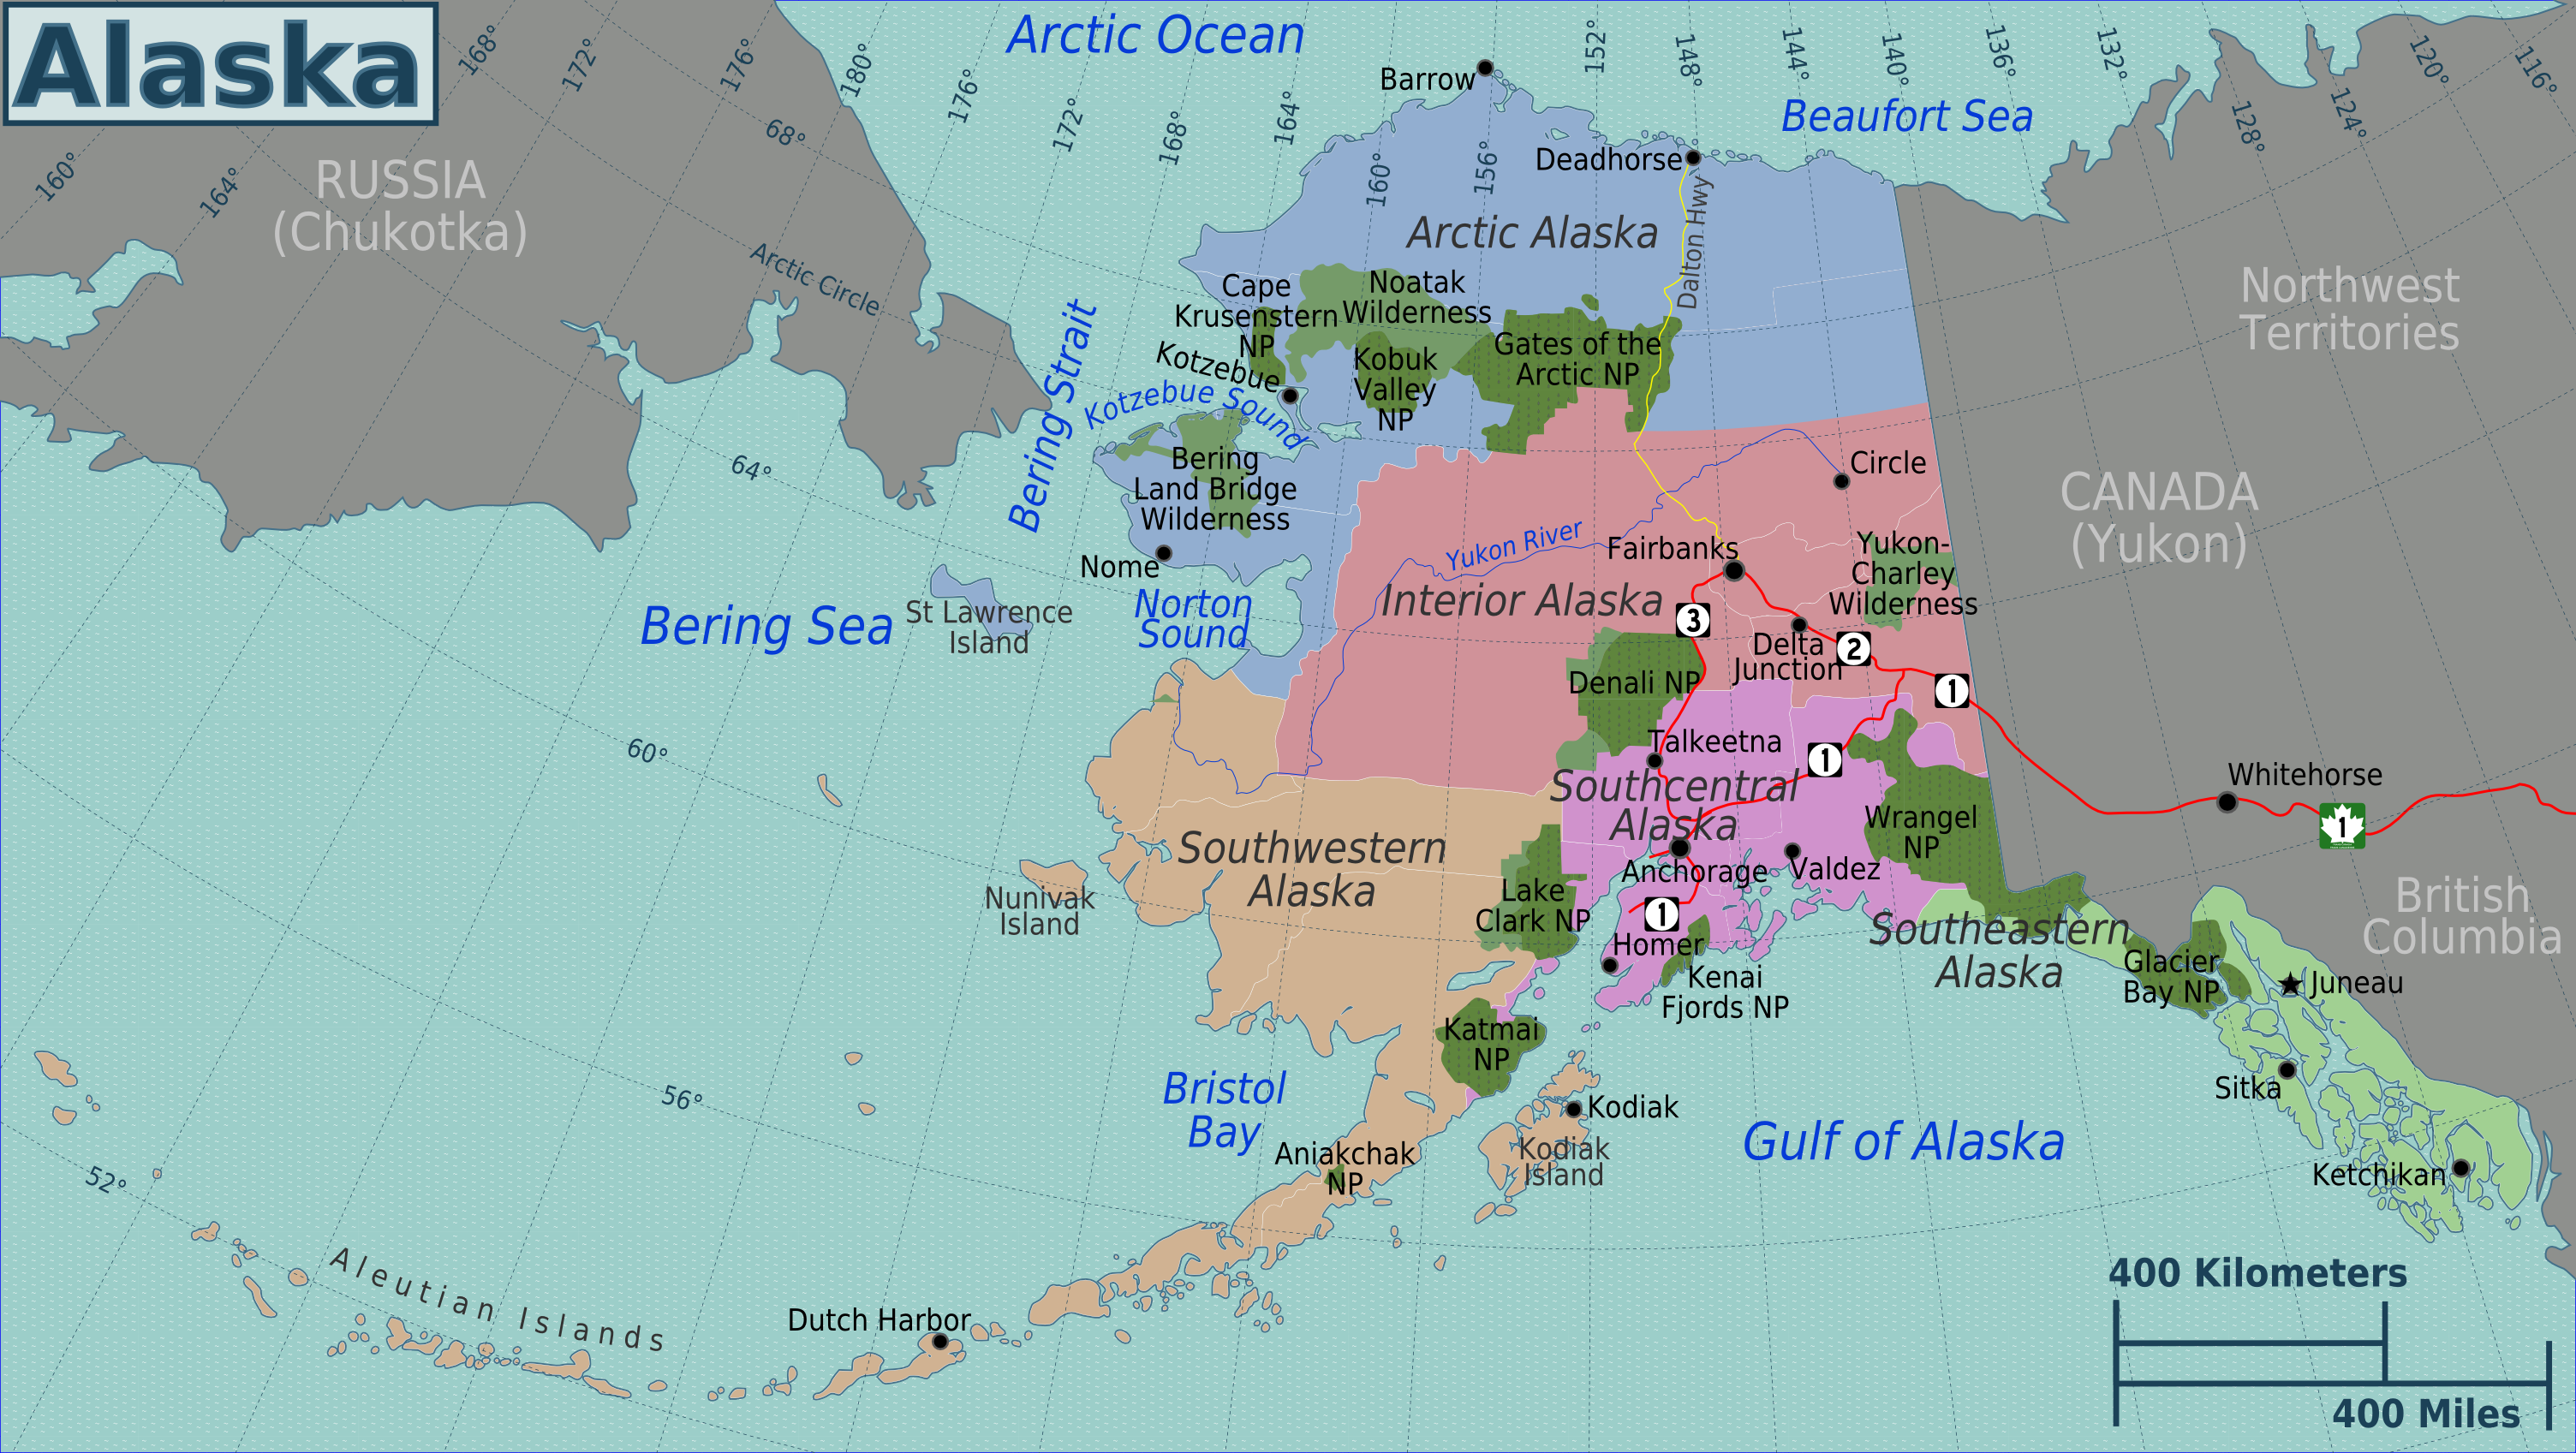 Alaska and Canada Port of Call Destination Maps